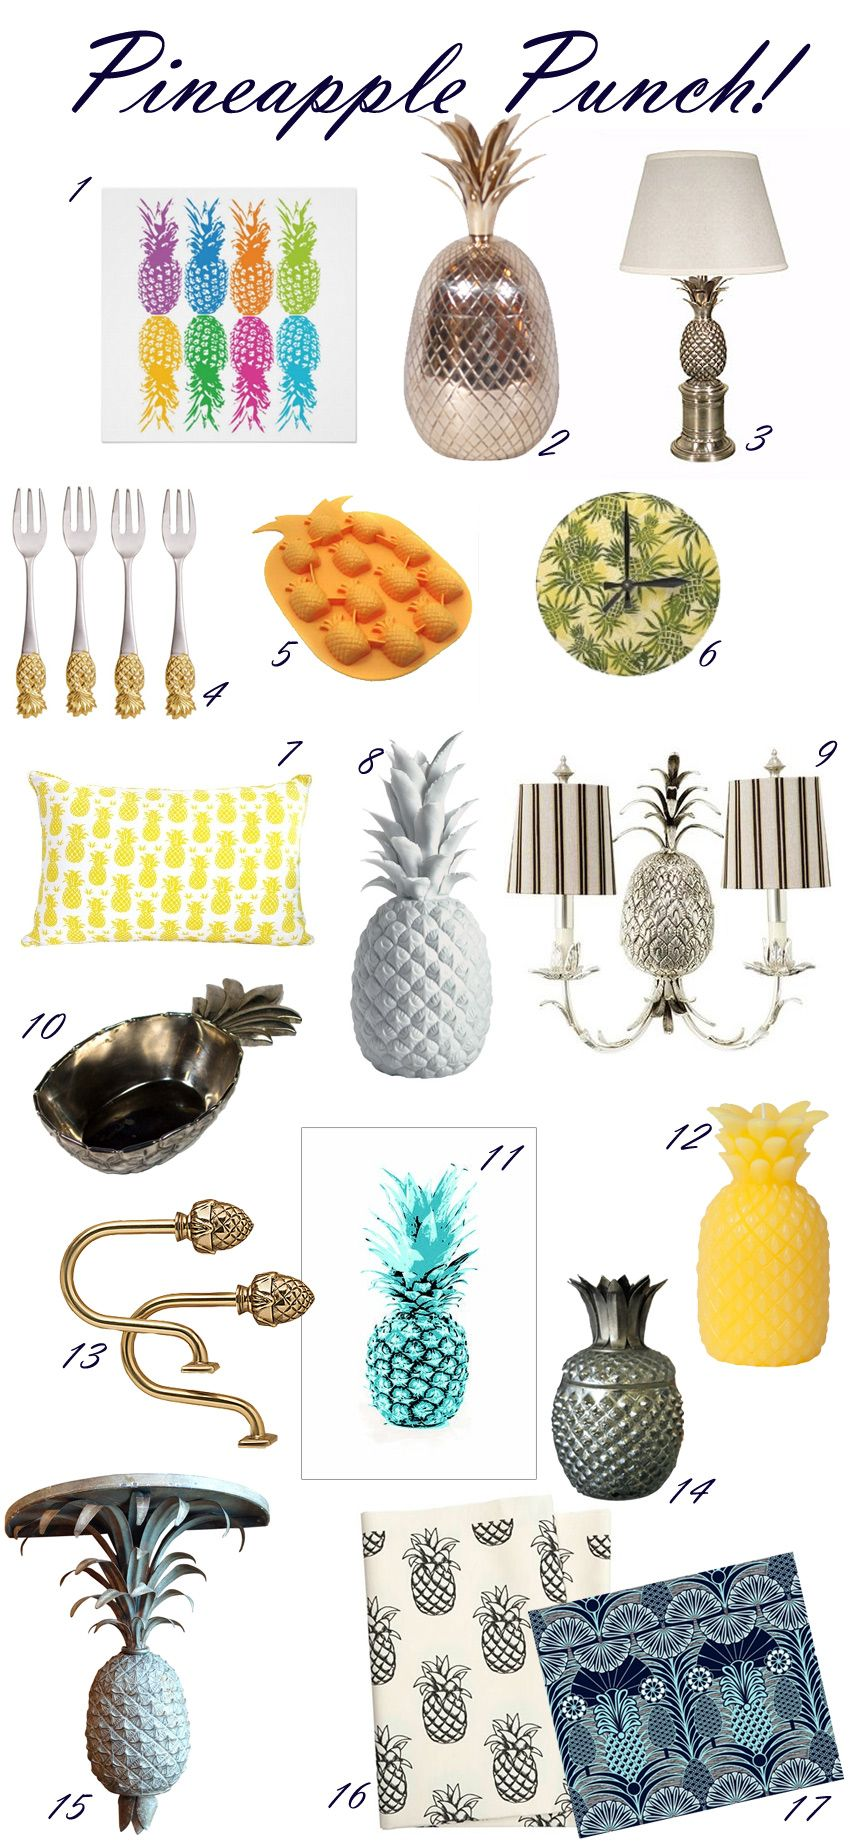 Pin By Bickimer Homes On Model Homes: Pineapple Decor Round Up #pineapple #tropical